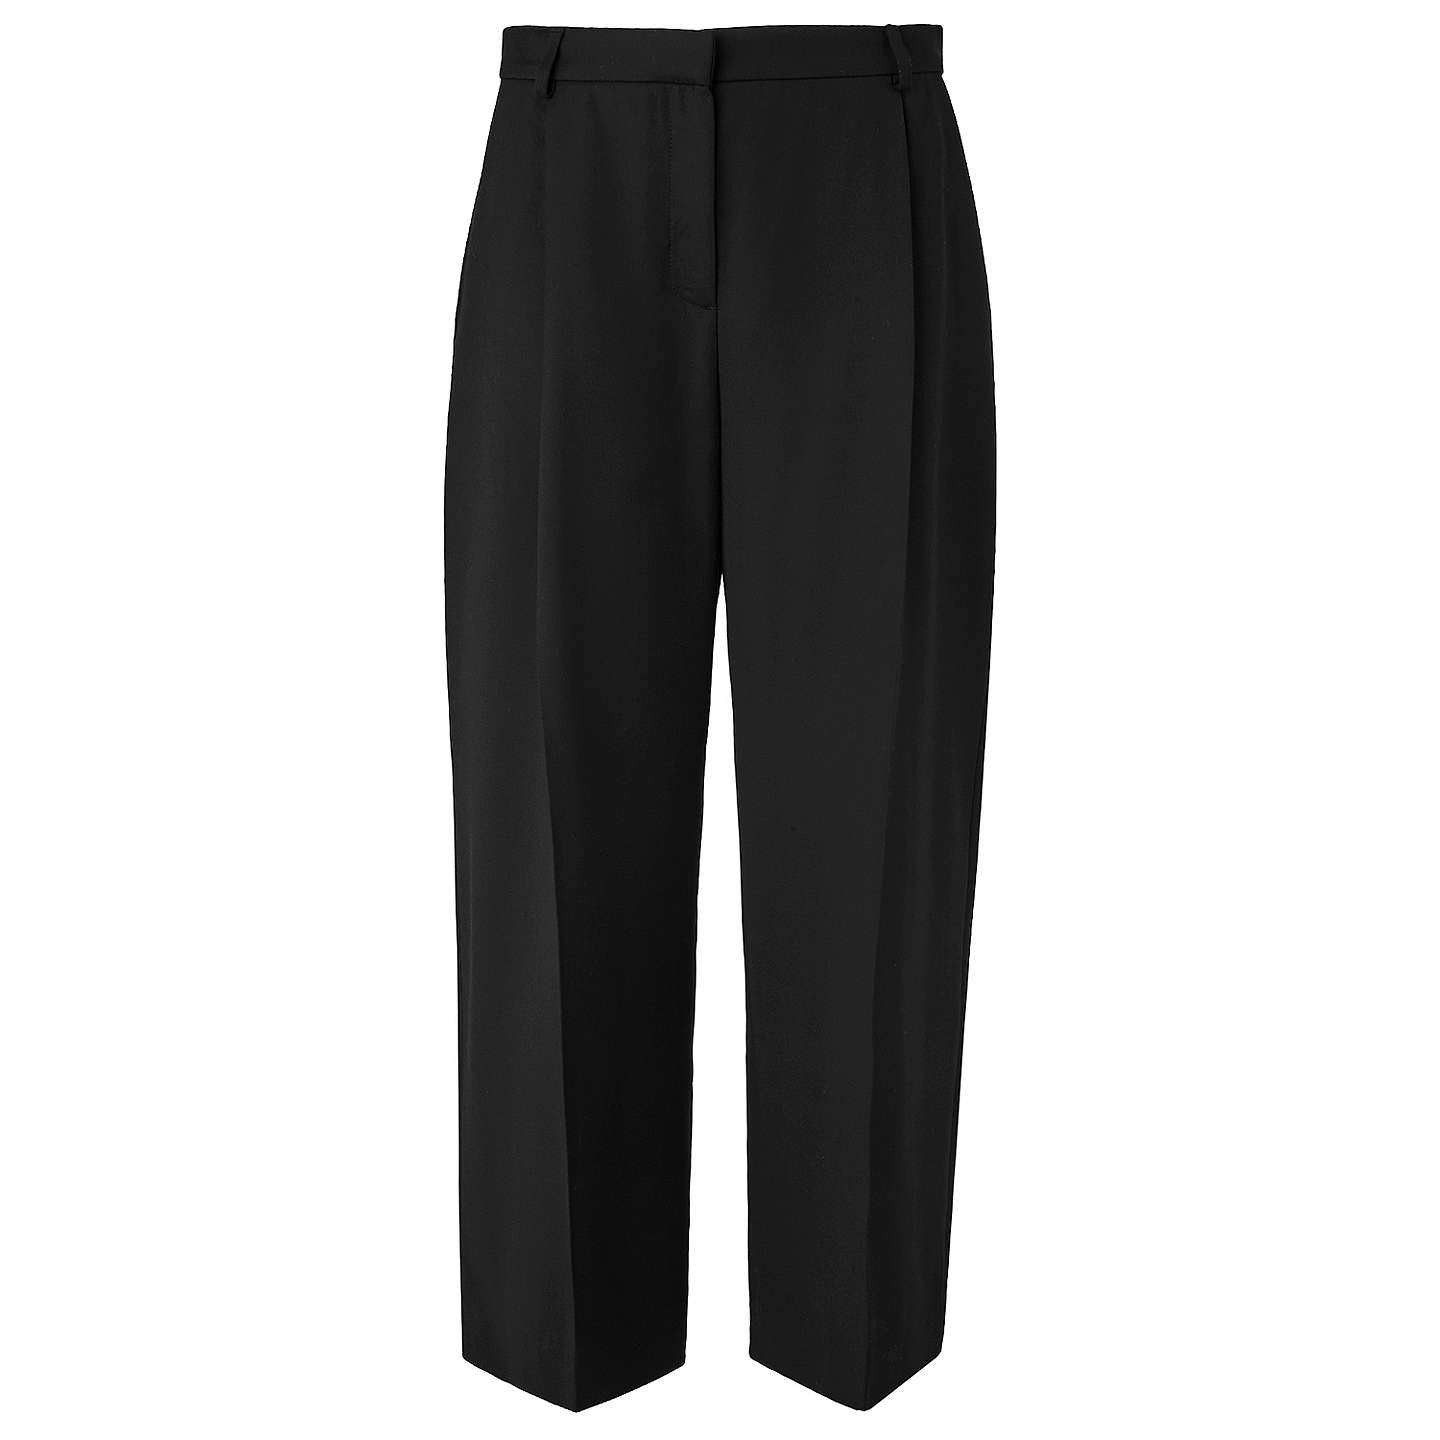 BuyL.K. Bennett Elma Cropped Trousers, Black, 8 Online at johnlewis.com